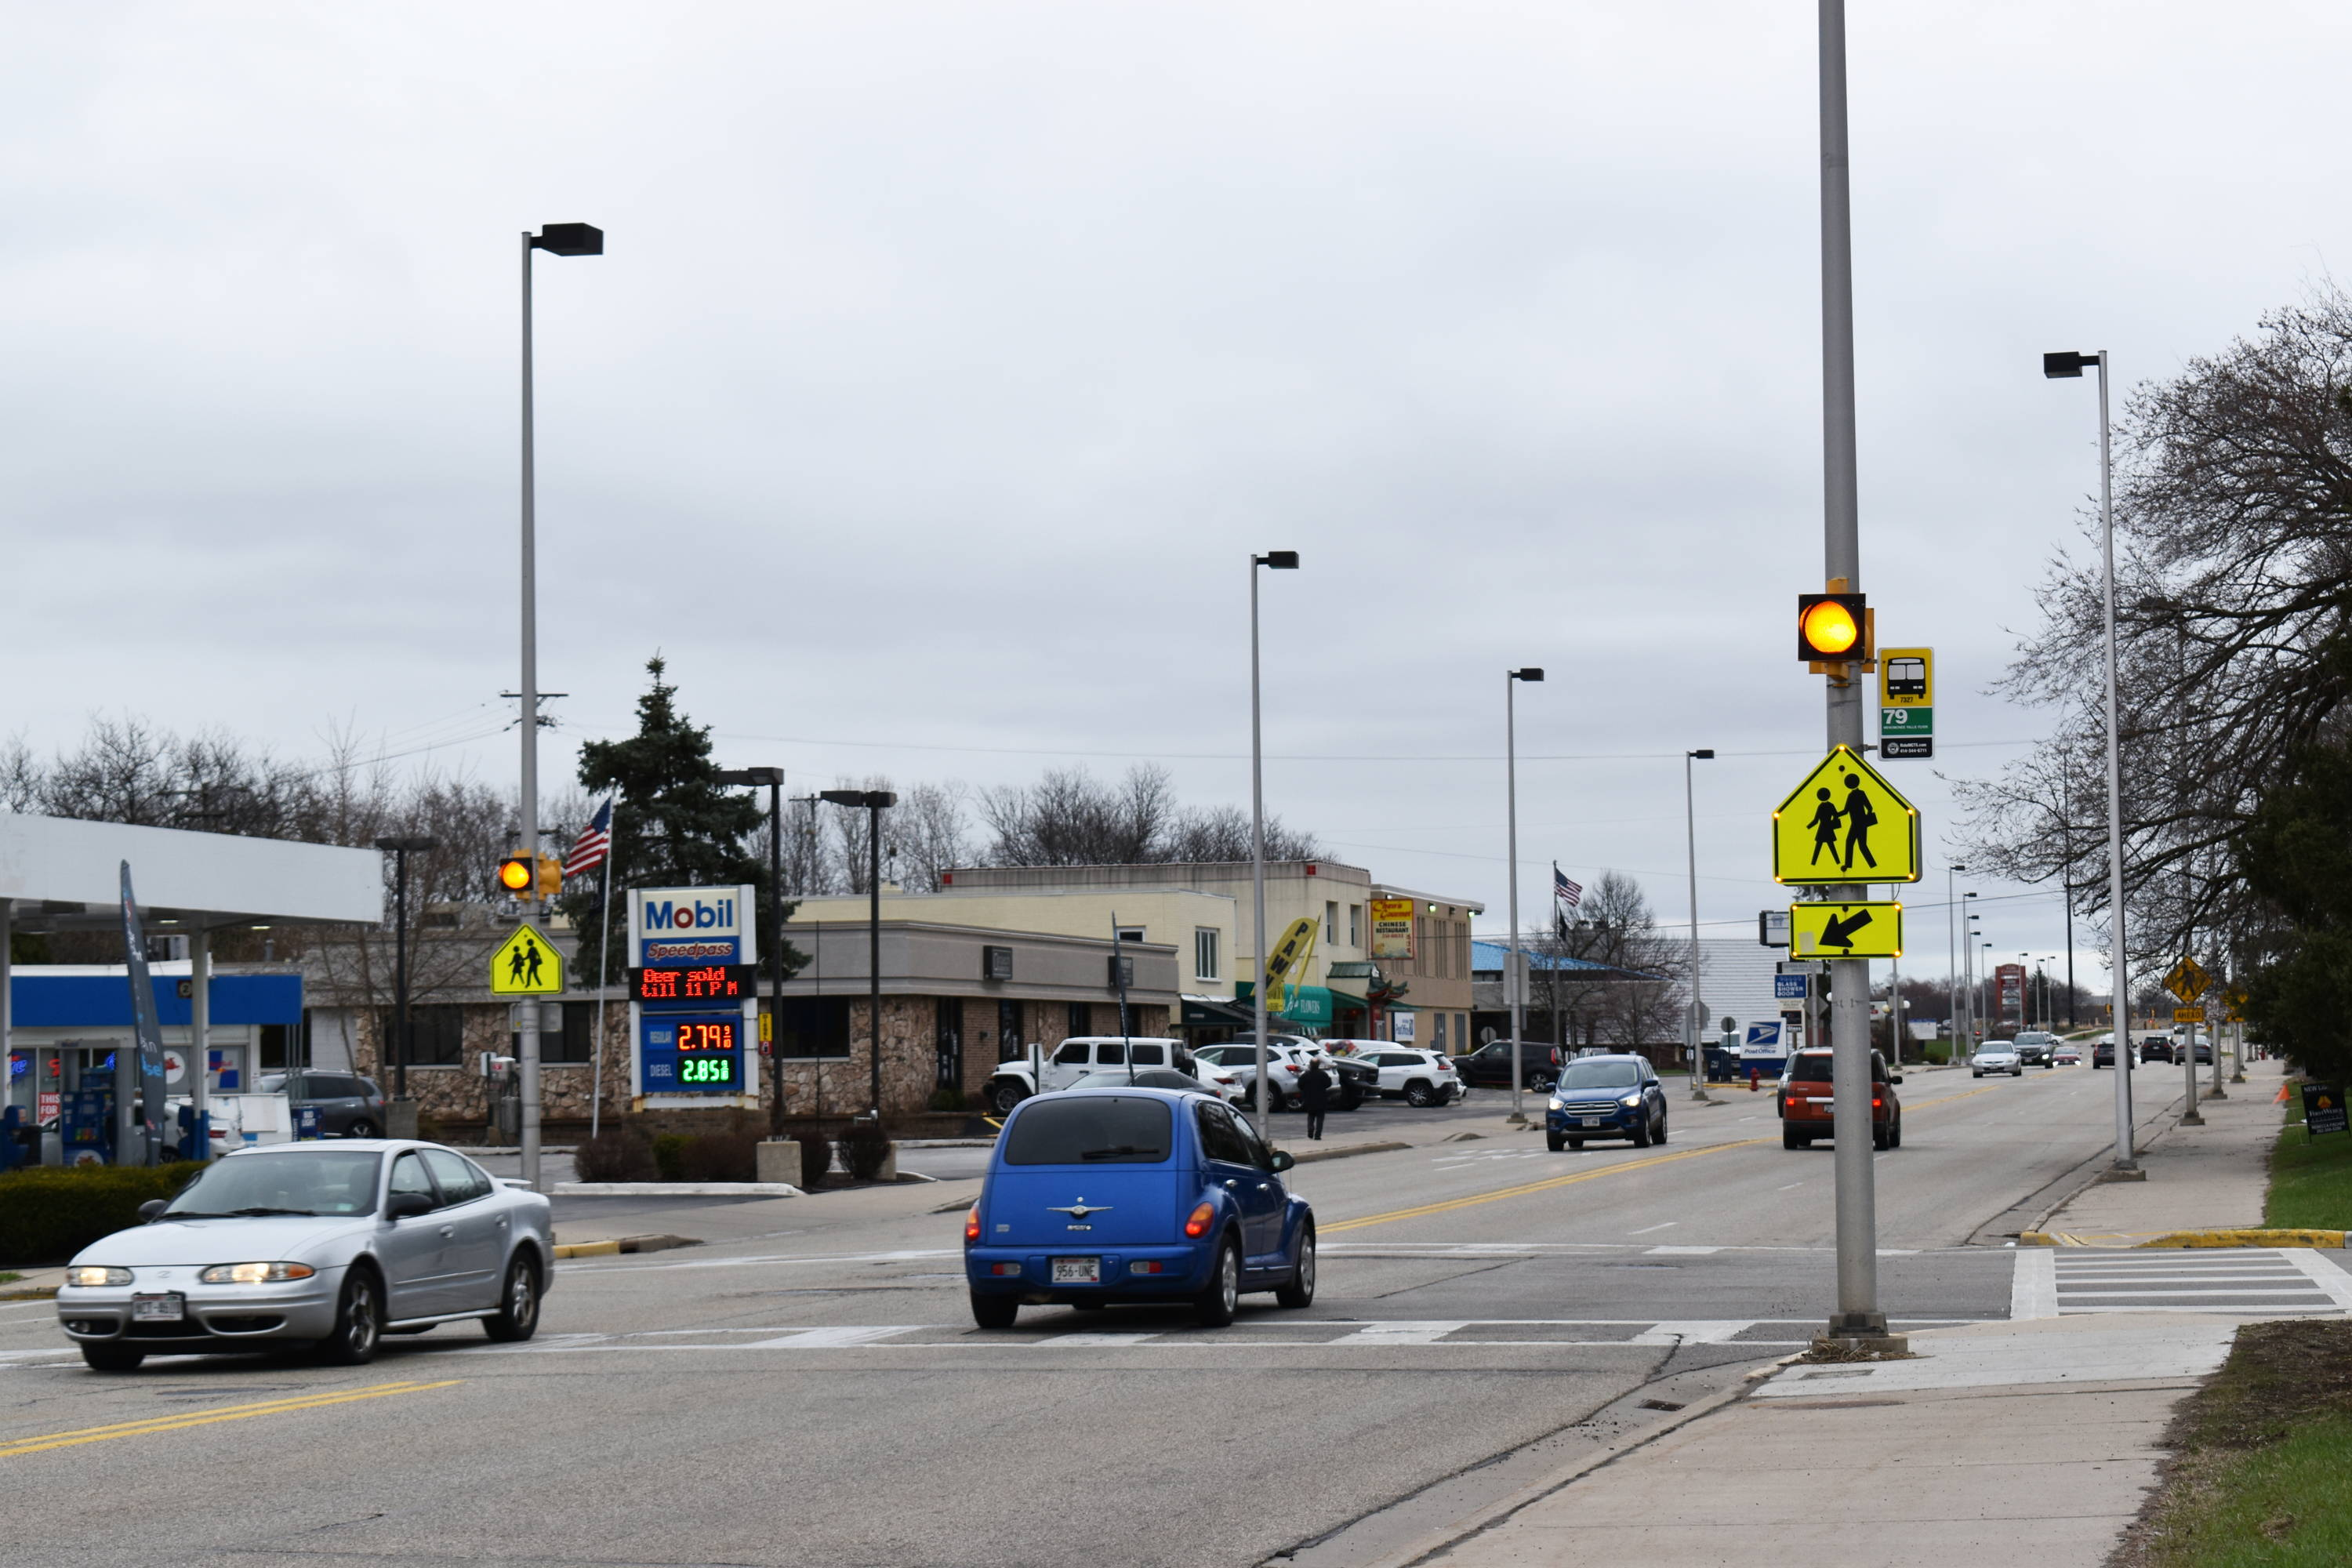 Flashing LED beacons draw awareness to pedestrian crosswalk.